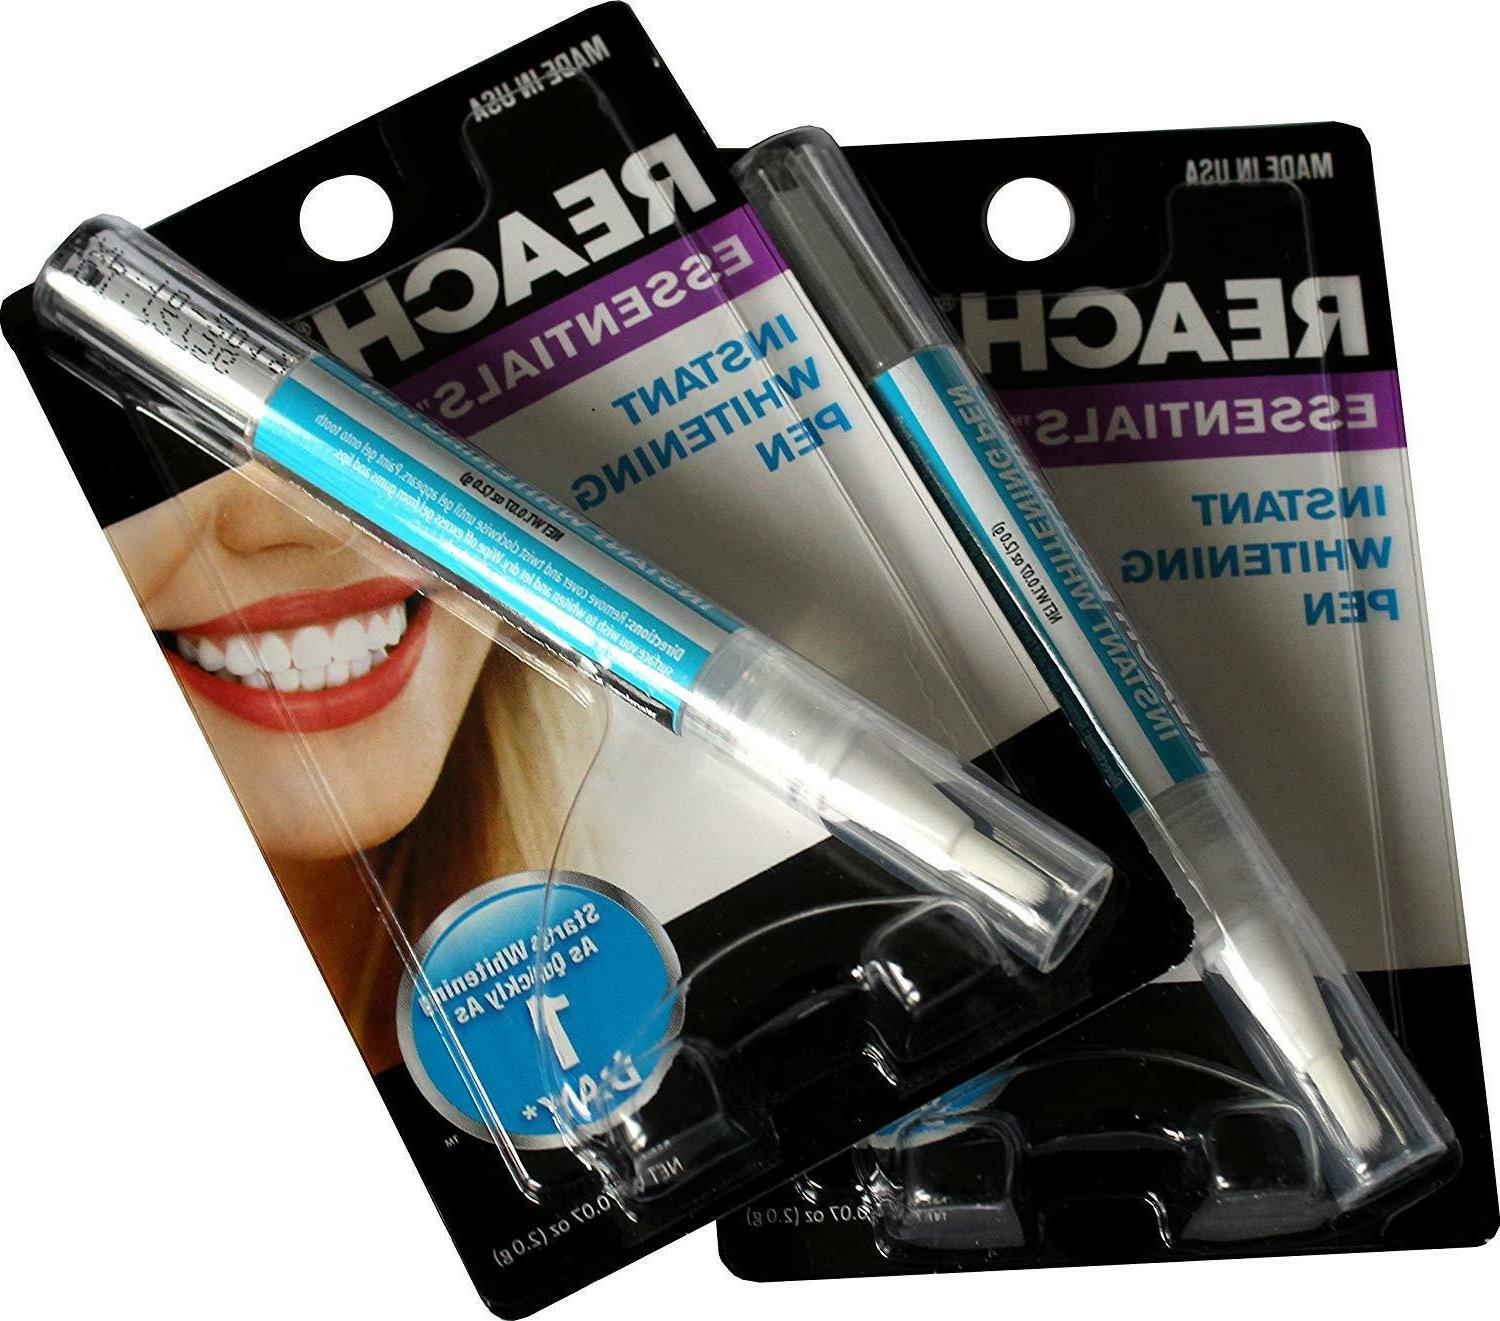 Reach Essentials Teeth Whitening Pen Made in the USA- Pack of